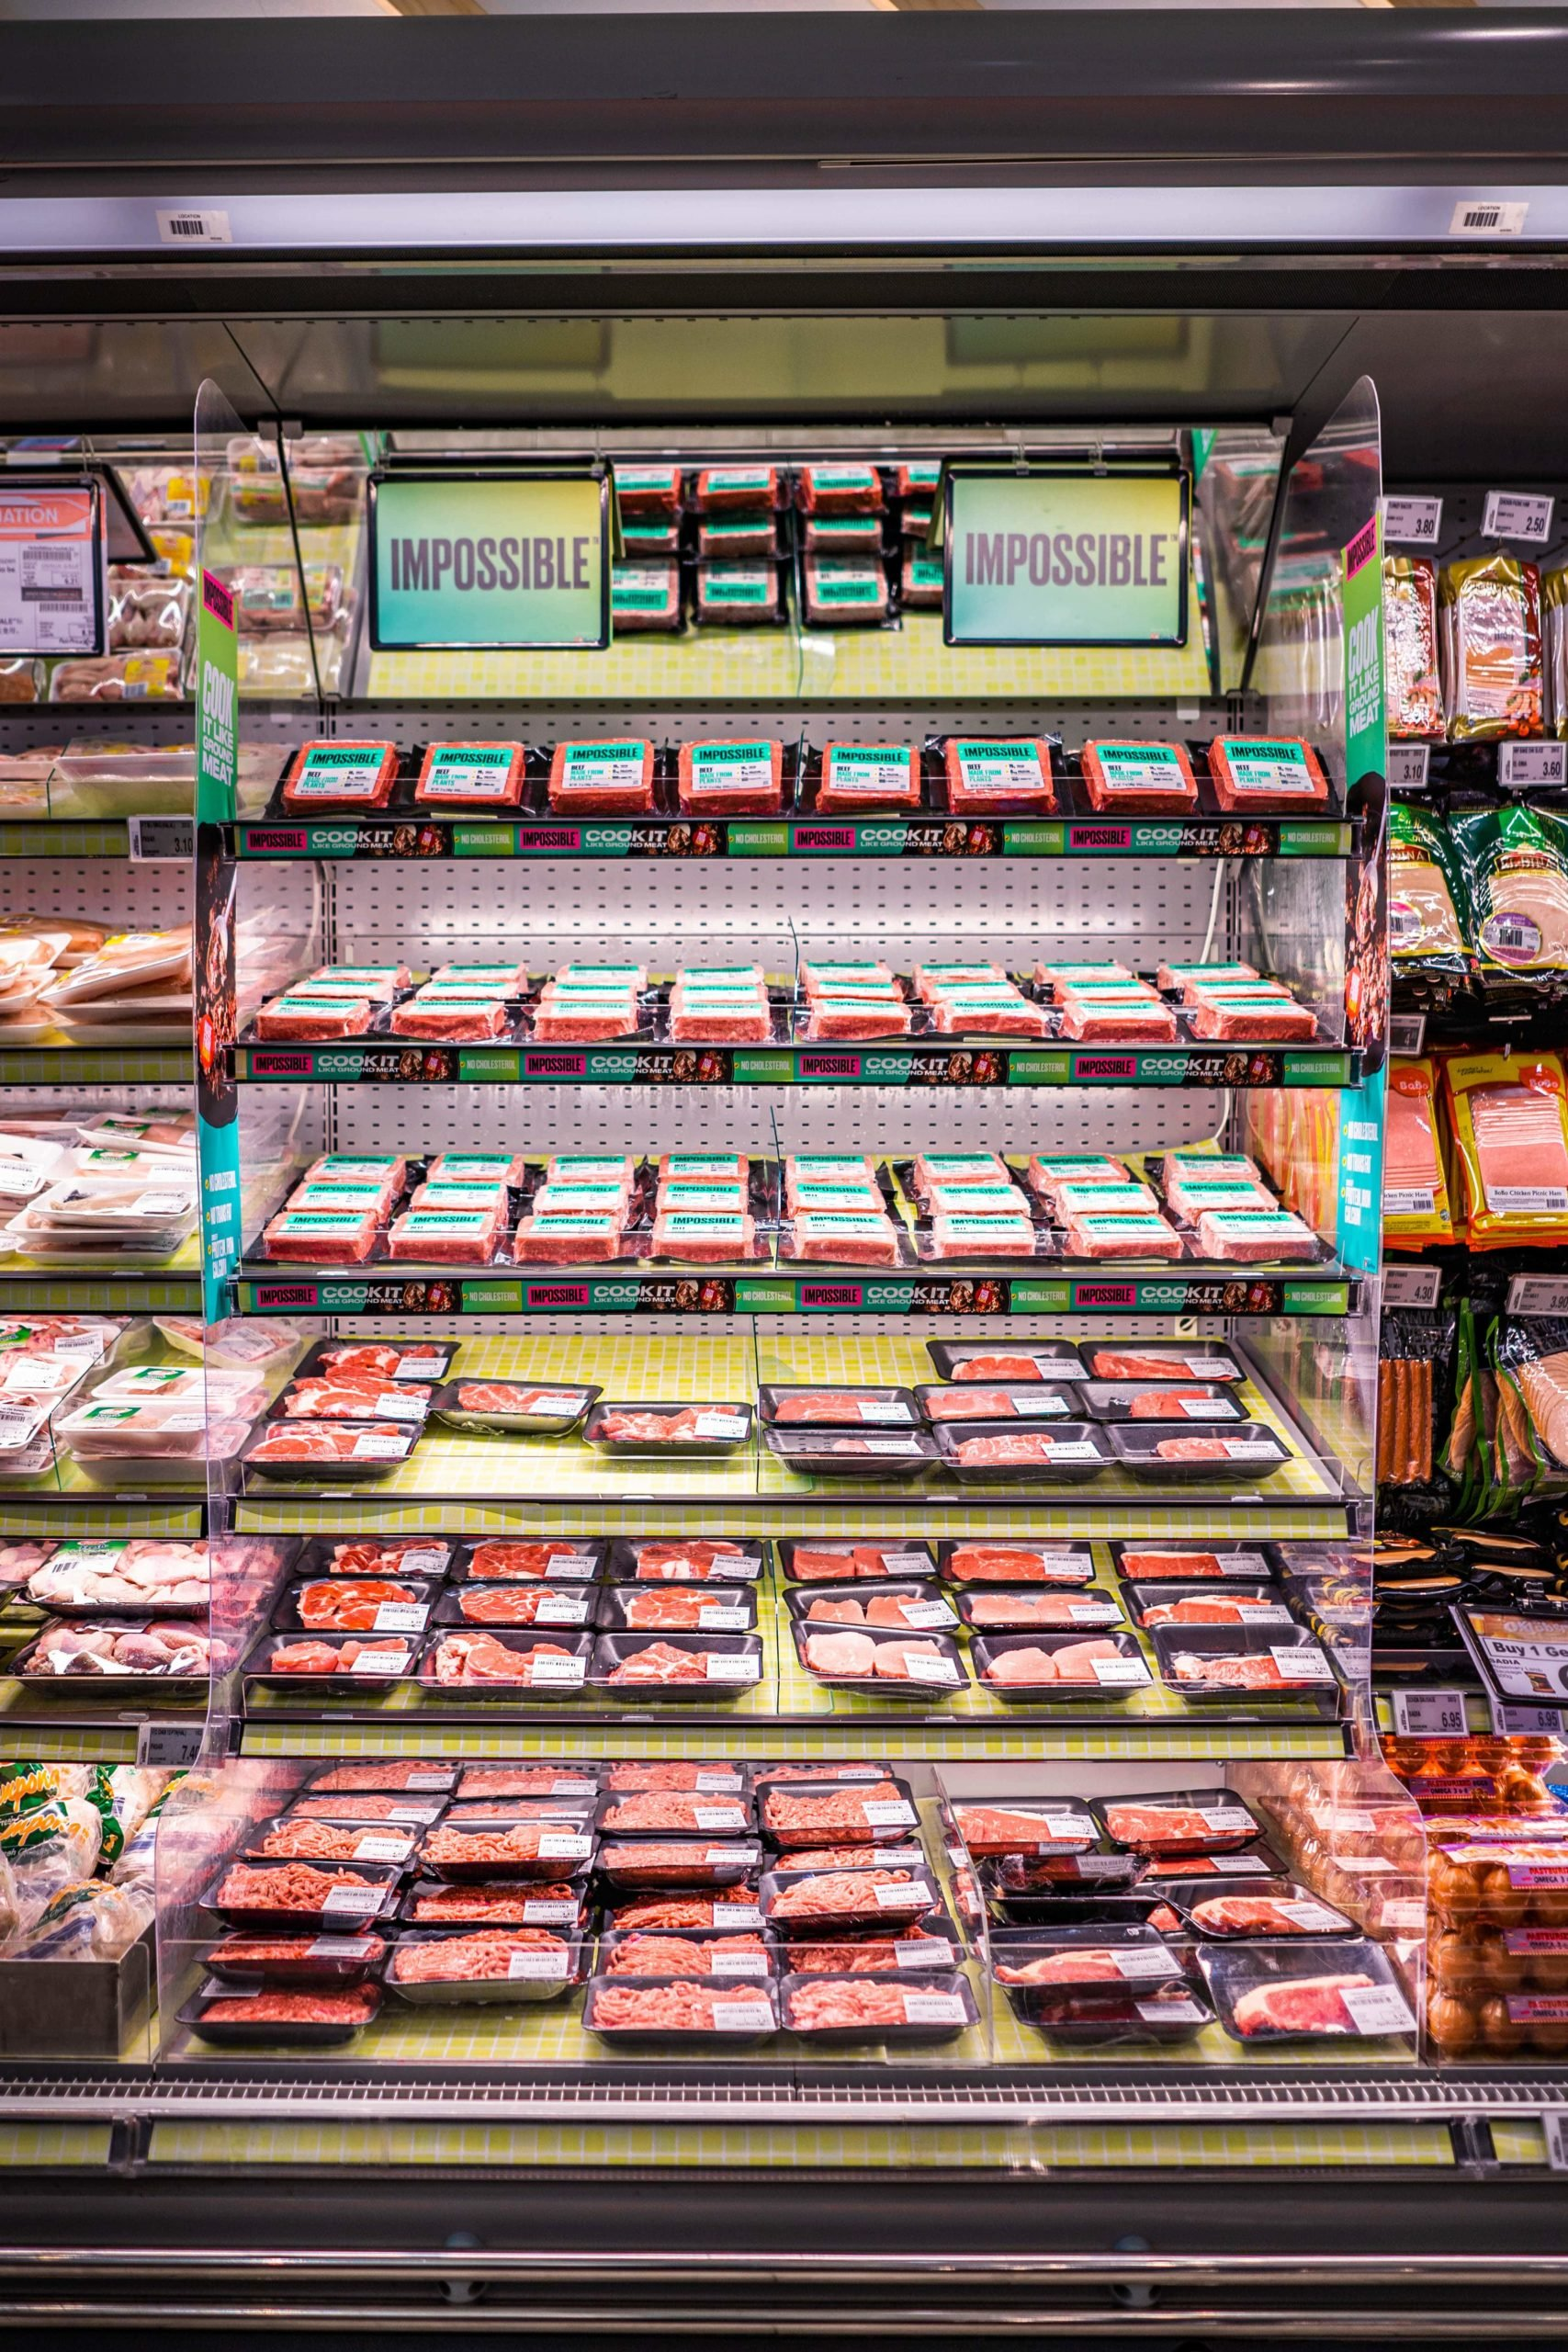 Impossible meat Fairprice redmart